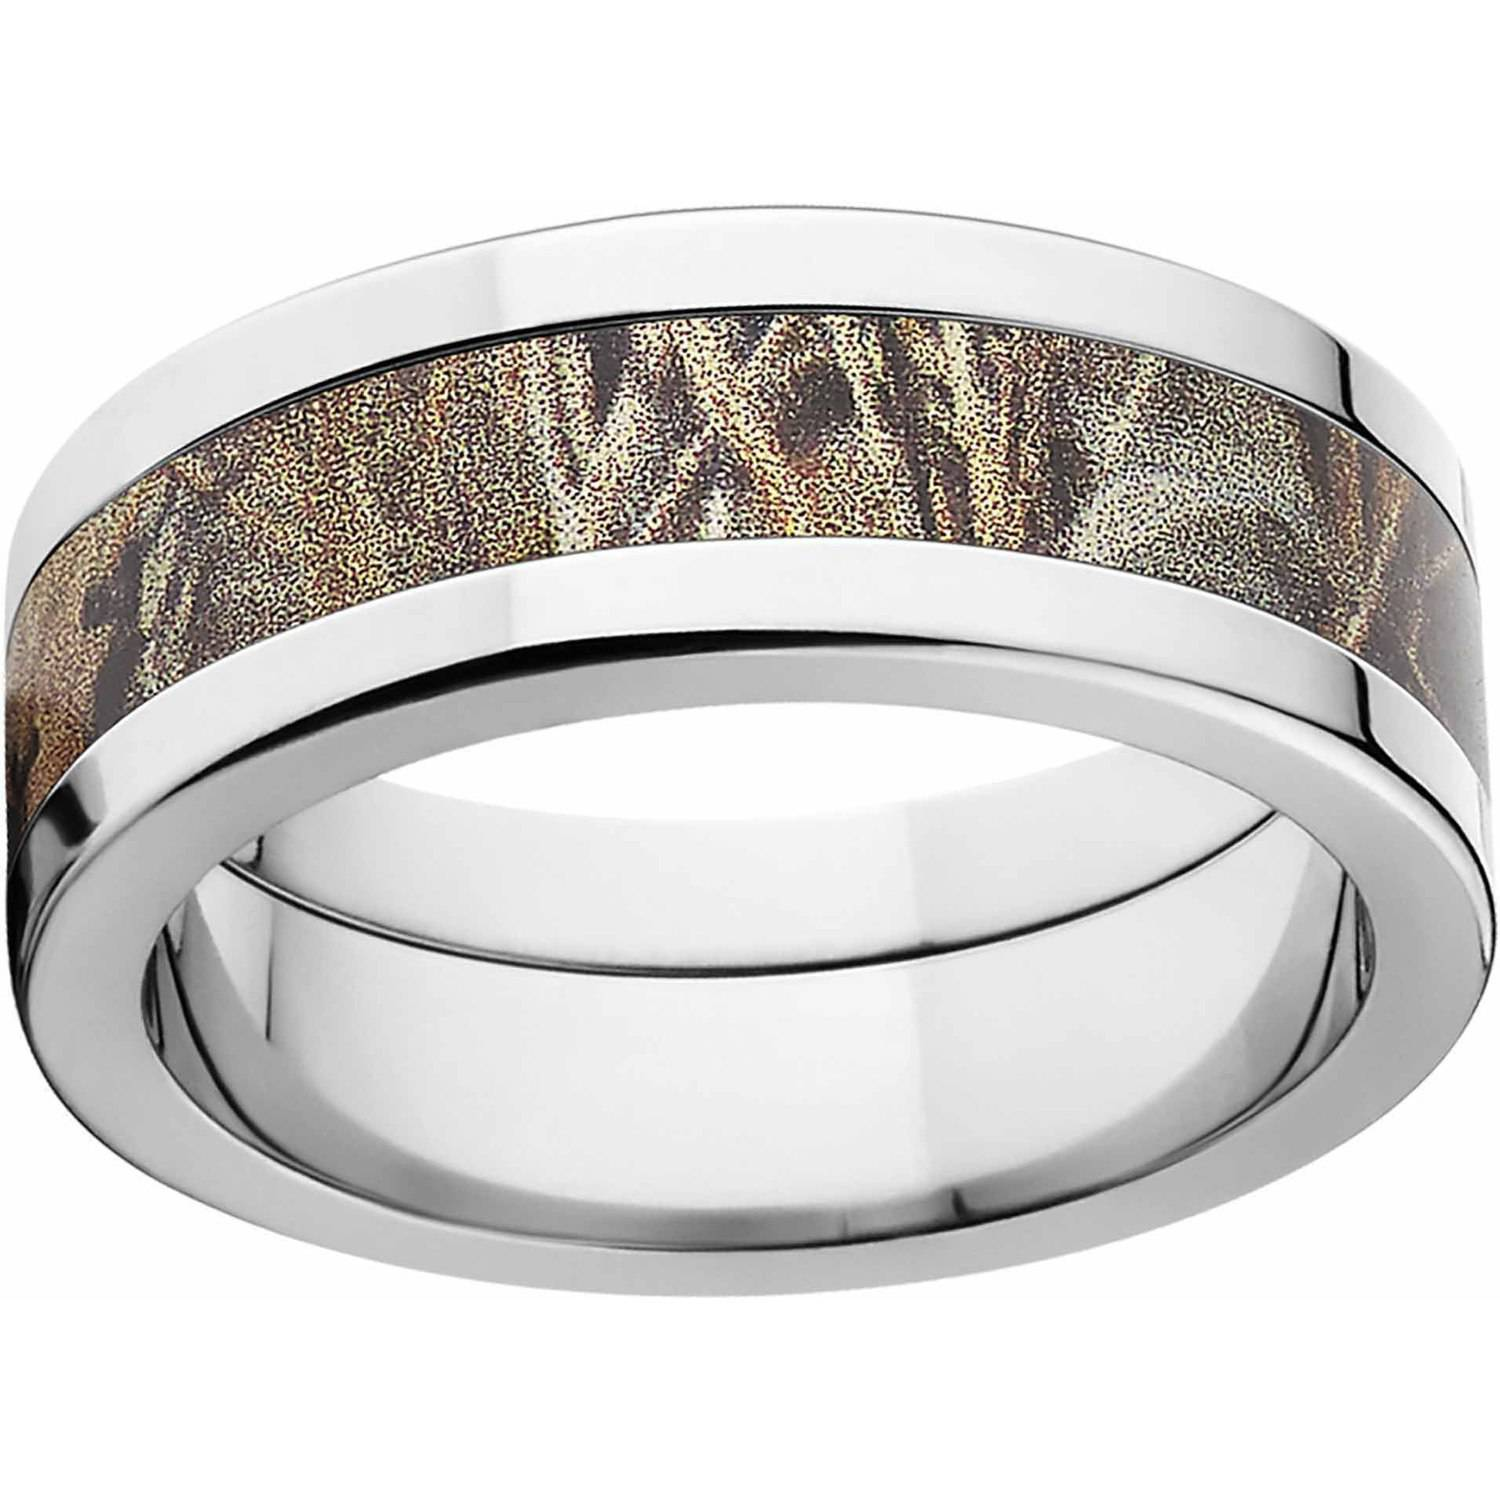 Realtree Max 4 Men's Camo 8mm Stainless Steel Wedding Band by Generic